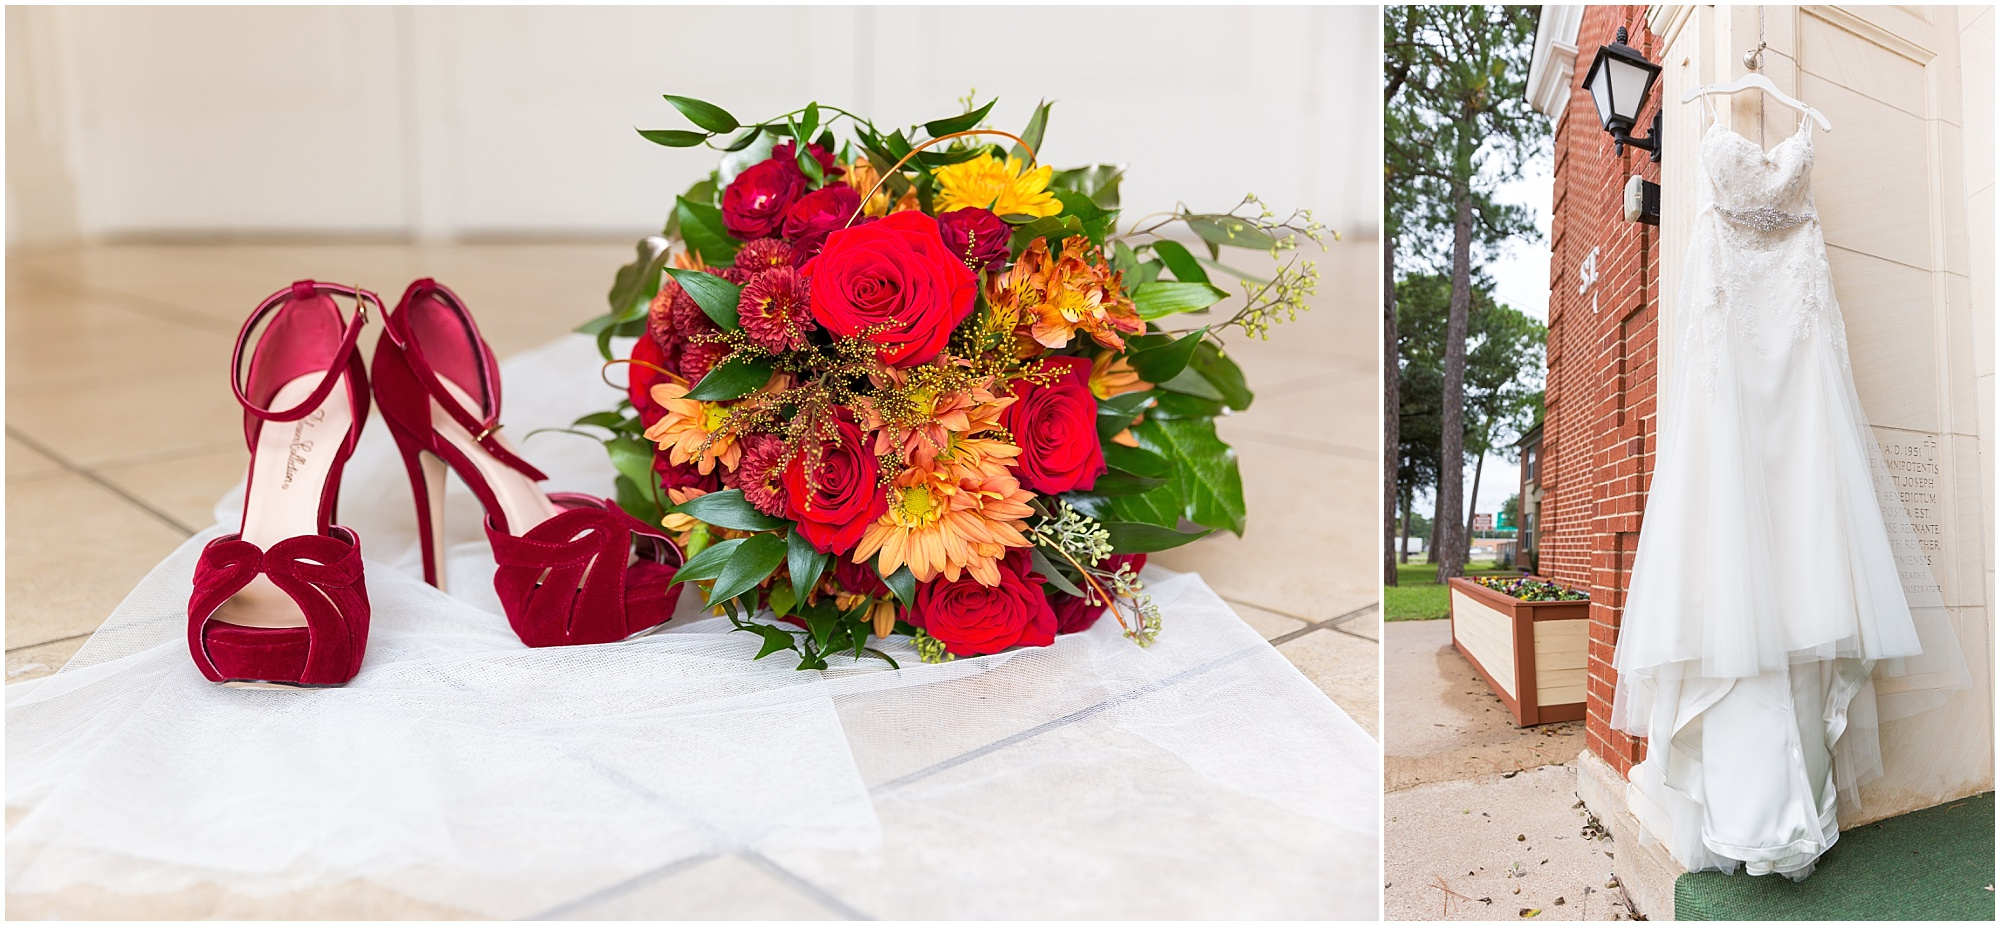 Bridal details - Fall wedding in Waco, TX - Jason & Melaina Photography - http://jasonandmelaina.com